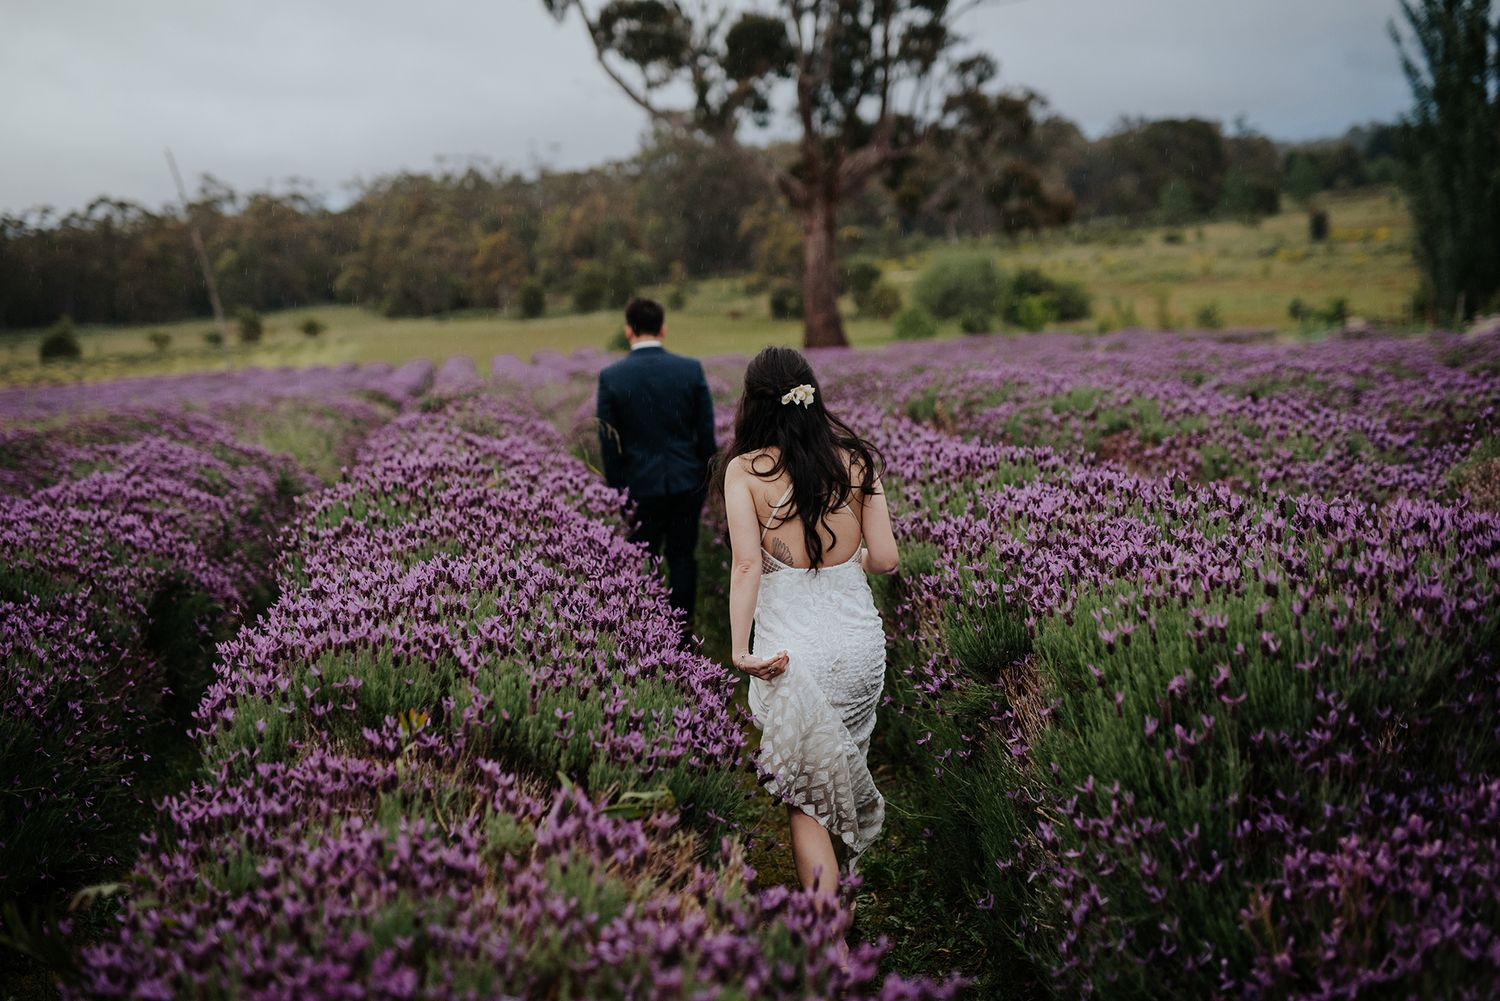 Candid relaxed wedding prewedding engagement couple photography at Daylesford lavender fields Melbourne